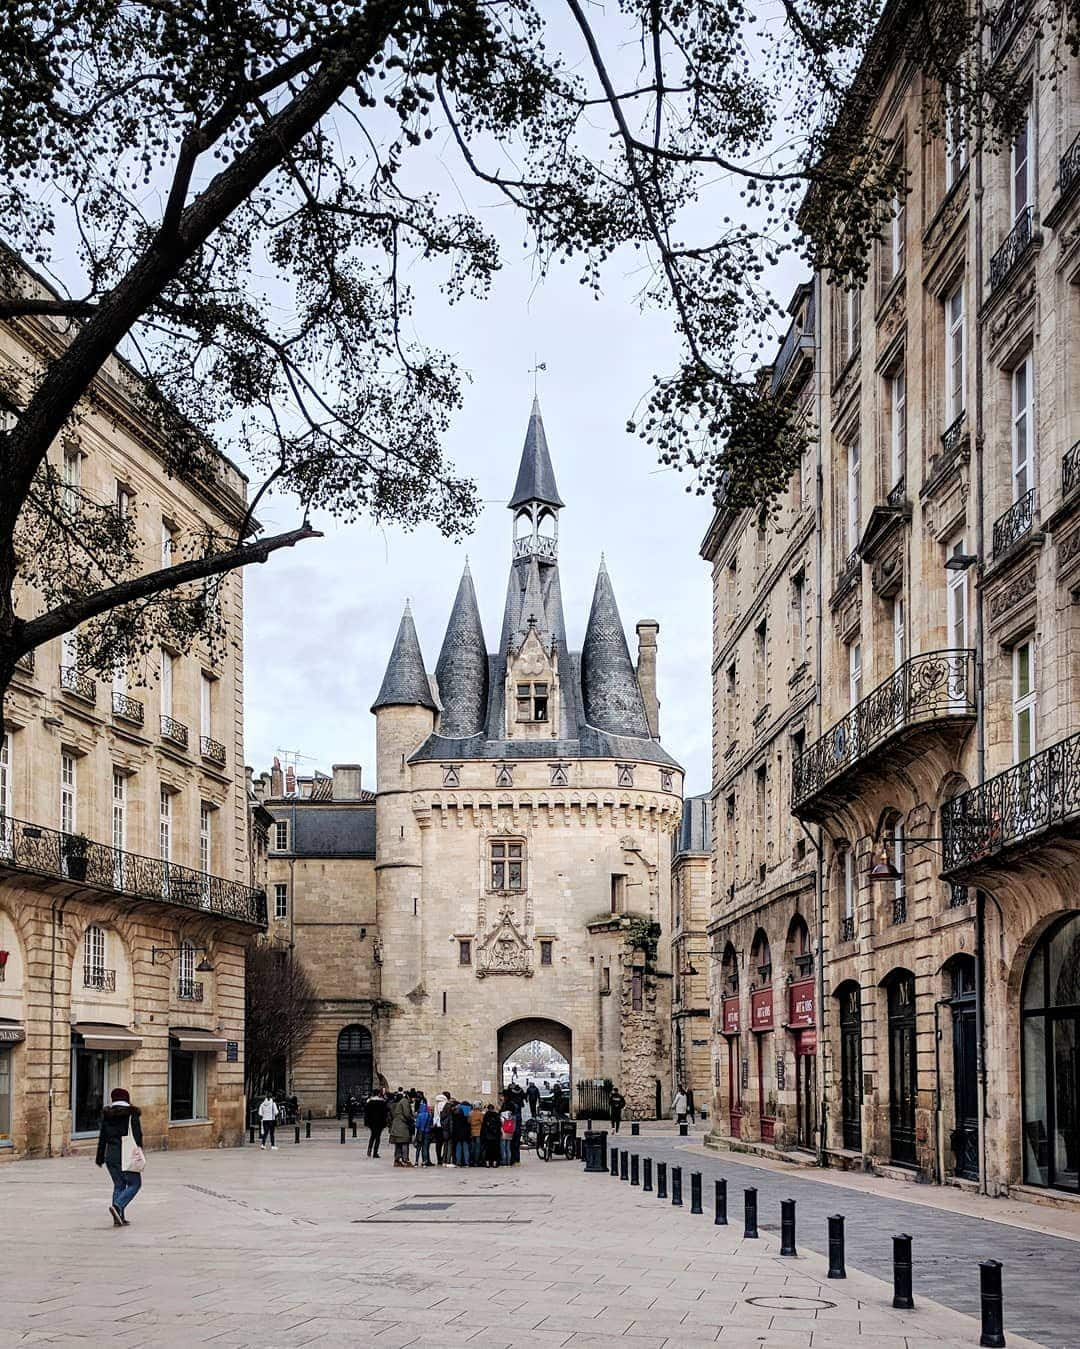 porte cailhau in bordeaux, france - a castle-like structure built from 1493-1496 that was the original gate to the city